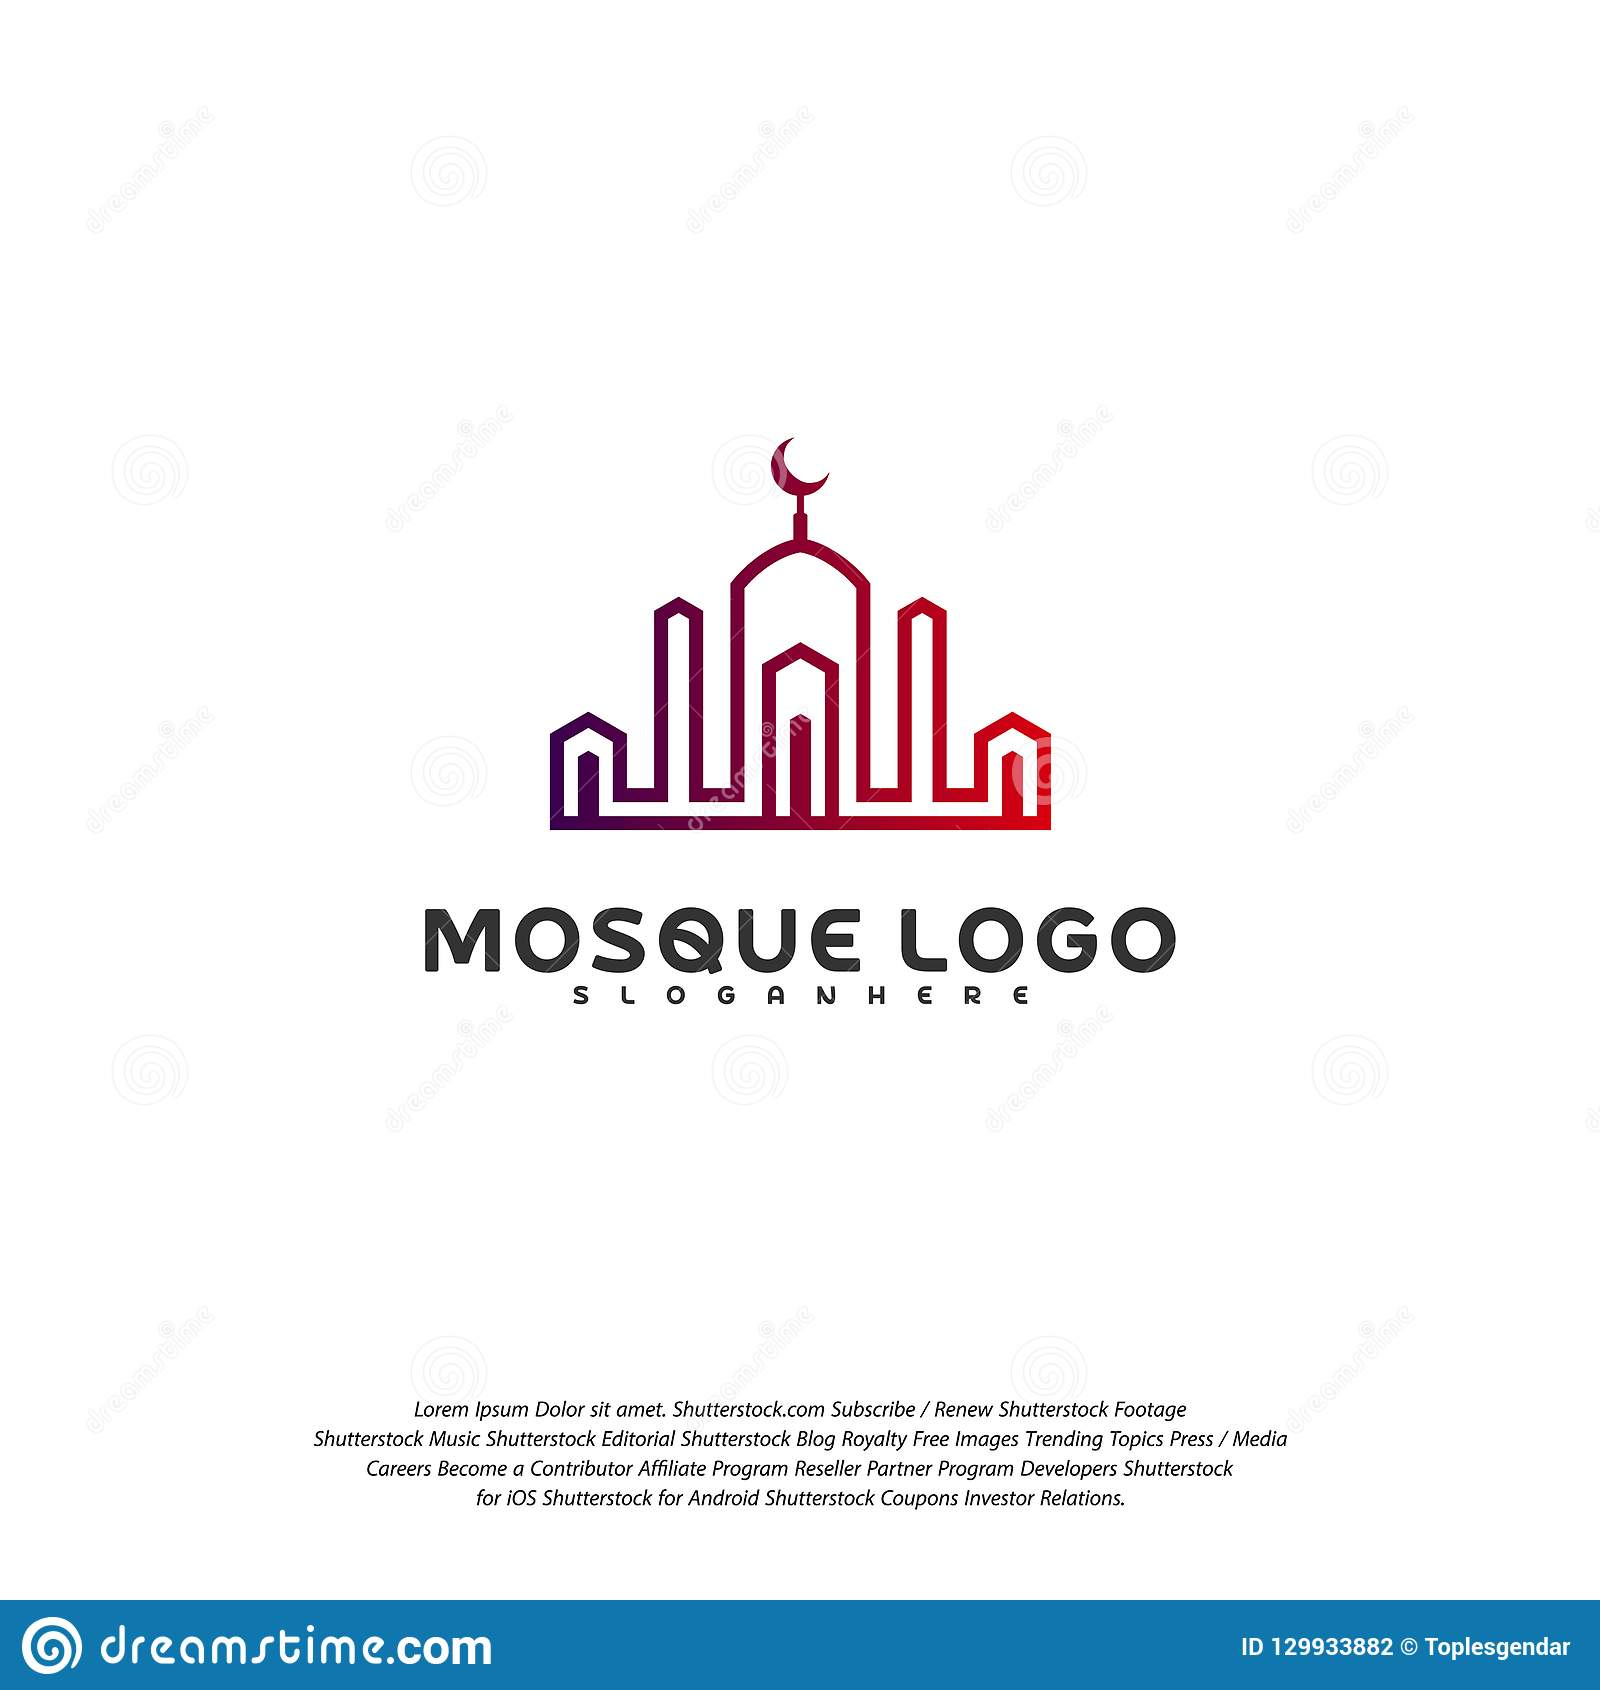 Islamic Logo Design Vector Mosque Logo Template Muslims Learn Logo Templates Stock Vector Illustration Of Element Abstract 129933882